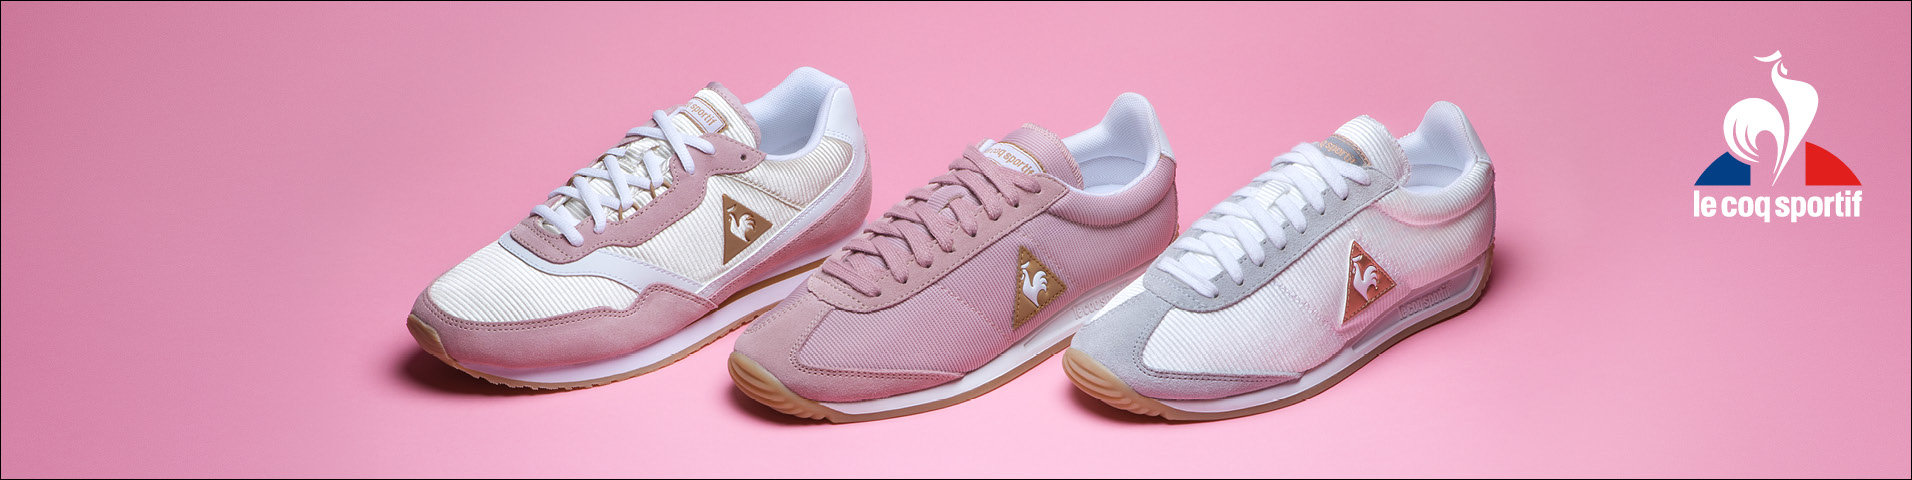 Basket Le Coq Sportif Rose Gold